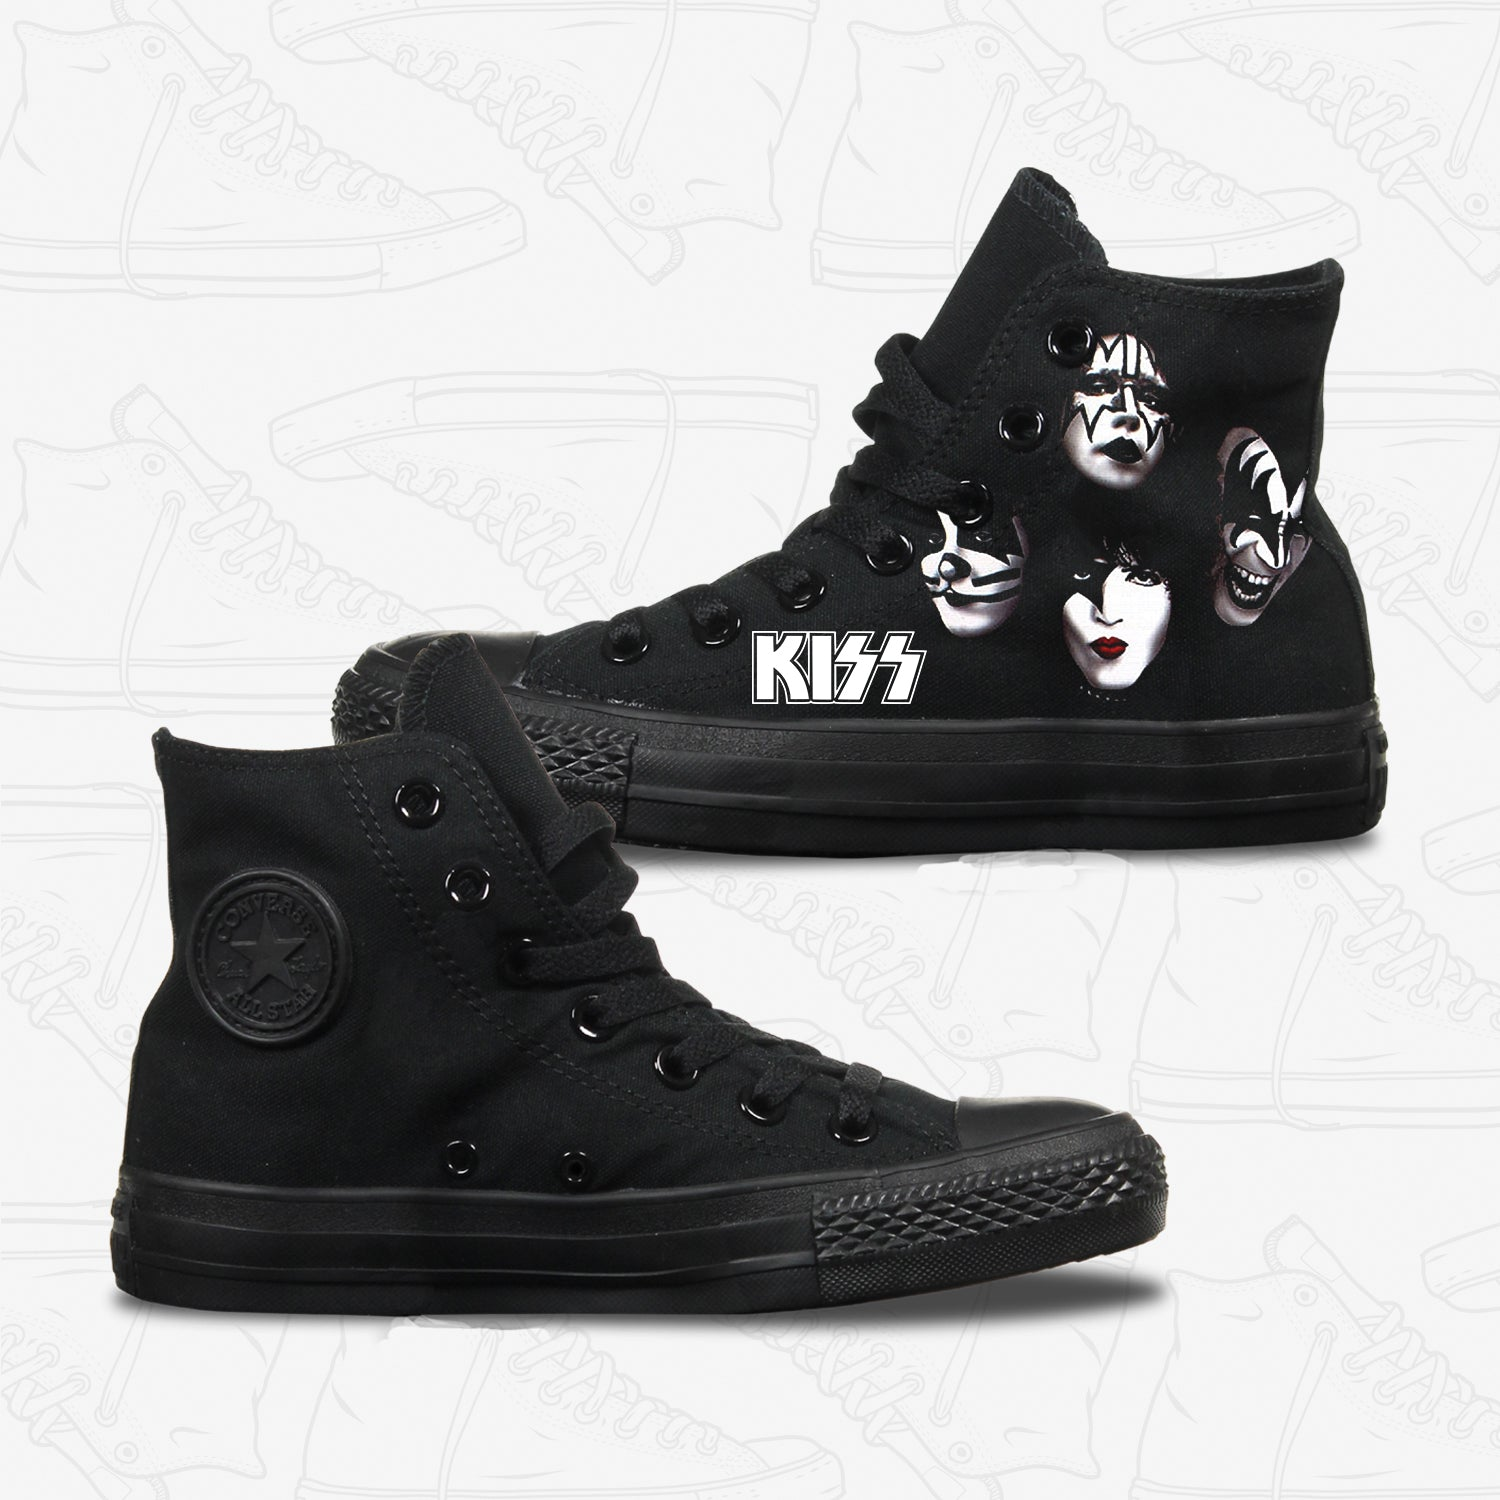 Kiss Adult Converse Shoes